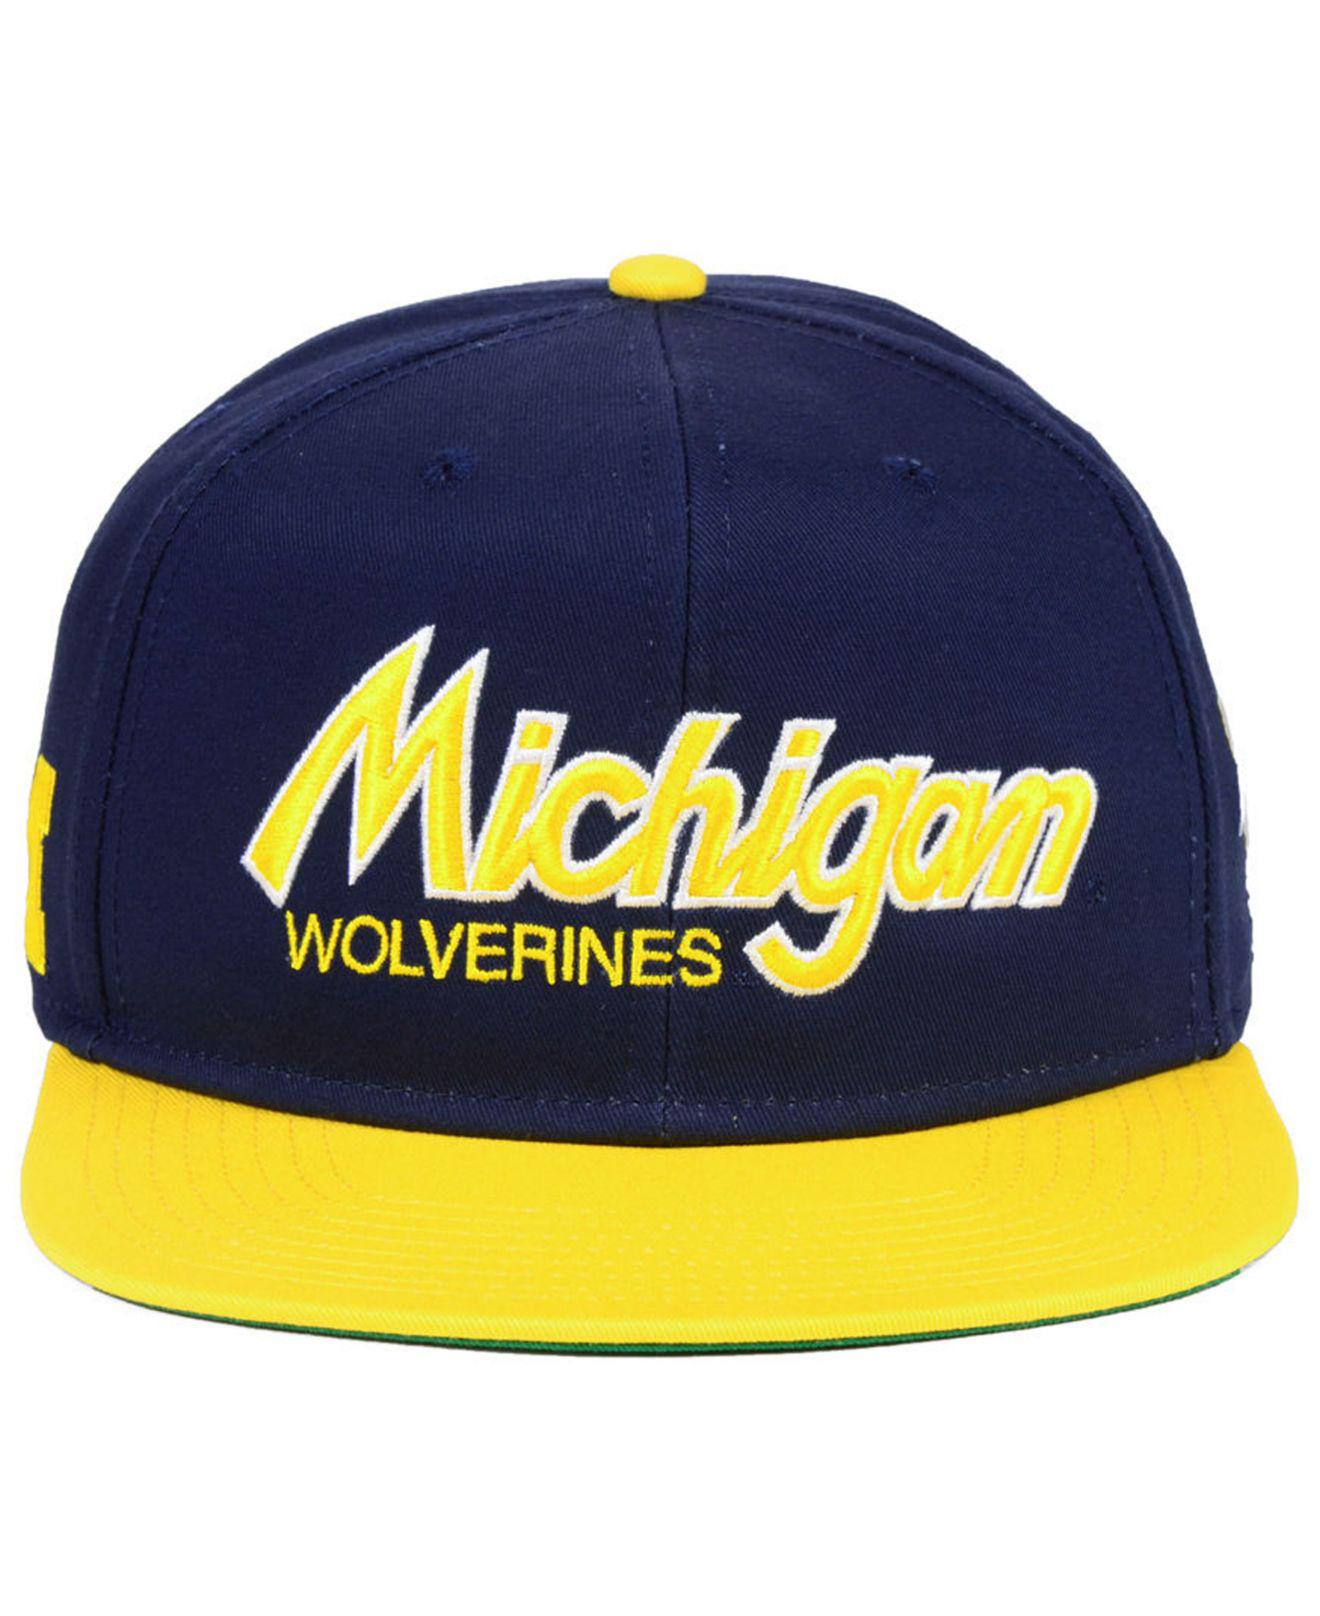 hot lyst nike michigan wolverines sport specialties snapback cap in blue for  men 3d97b 8e16e 891b08846054